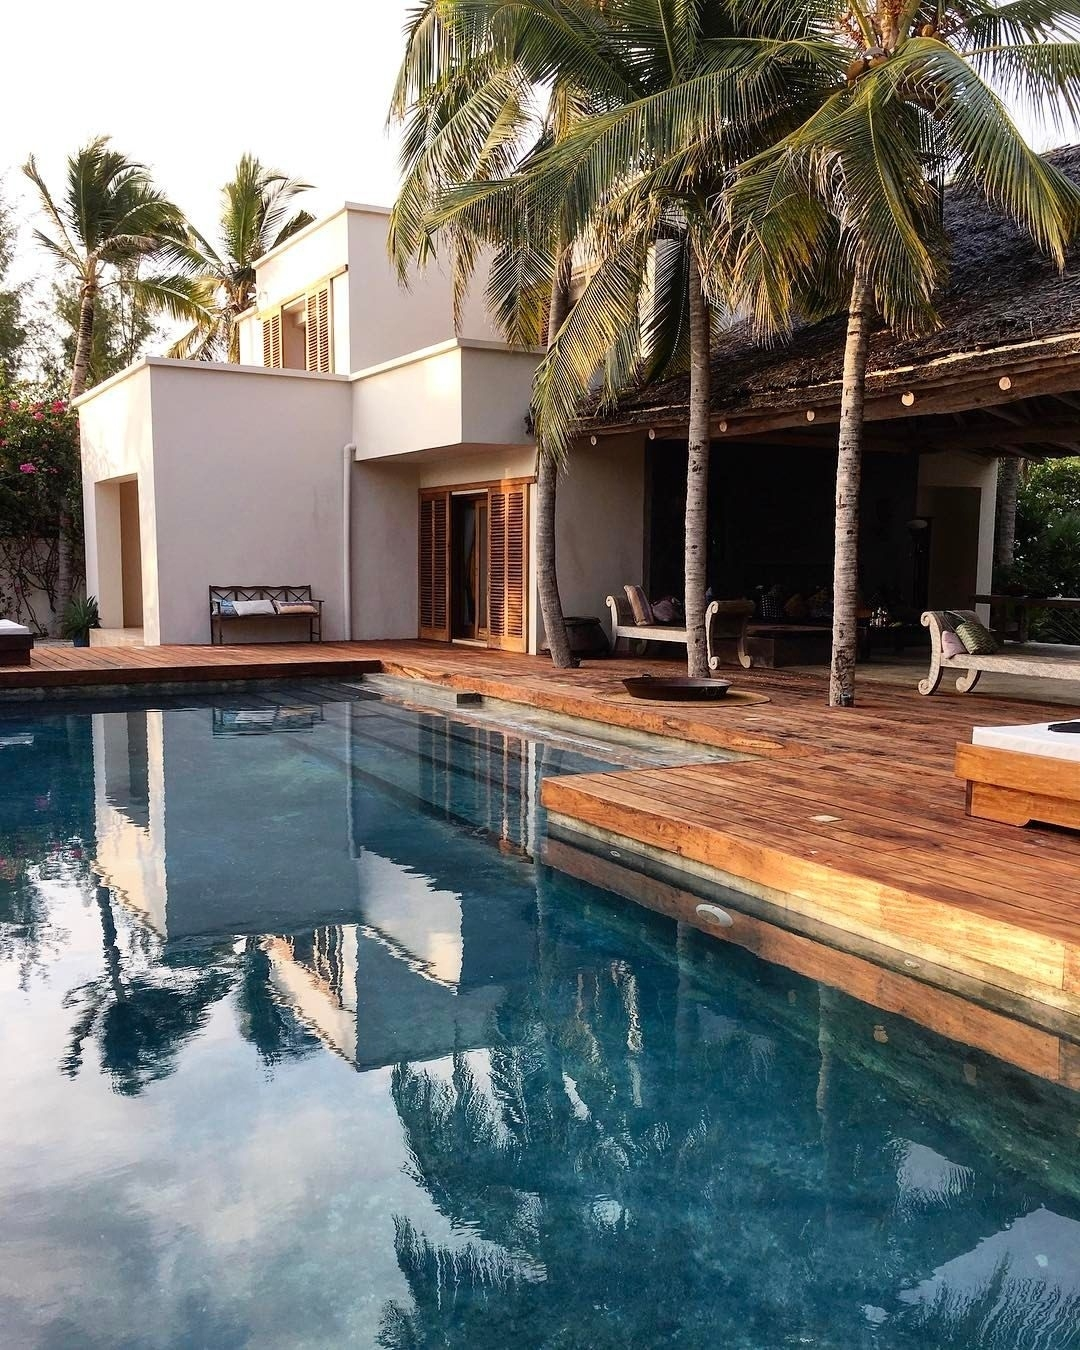 Pin By Diego Zambrano On The Pool | Pinterest | House Design, Home throughout House Design With Garden And Pool